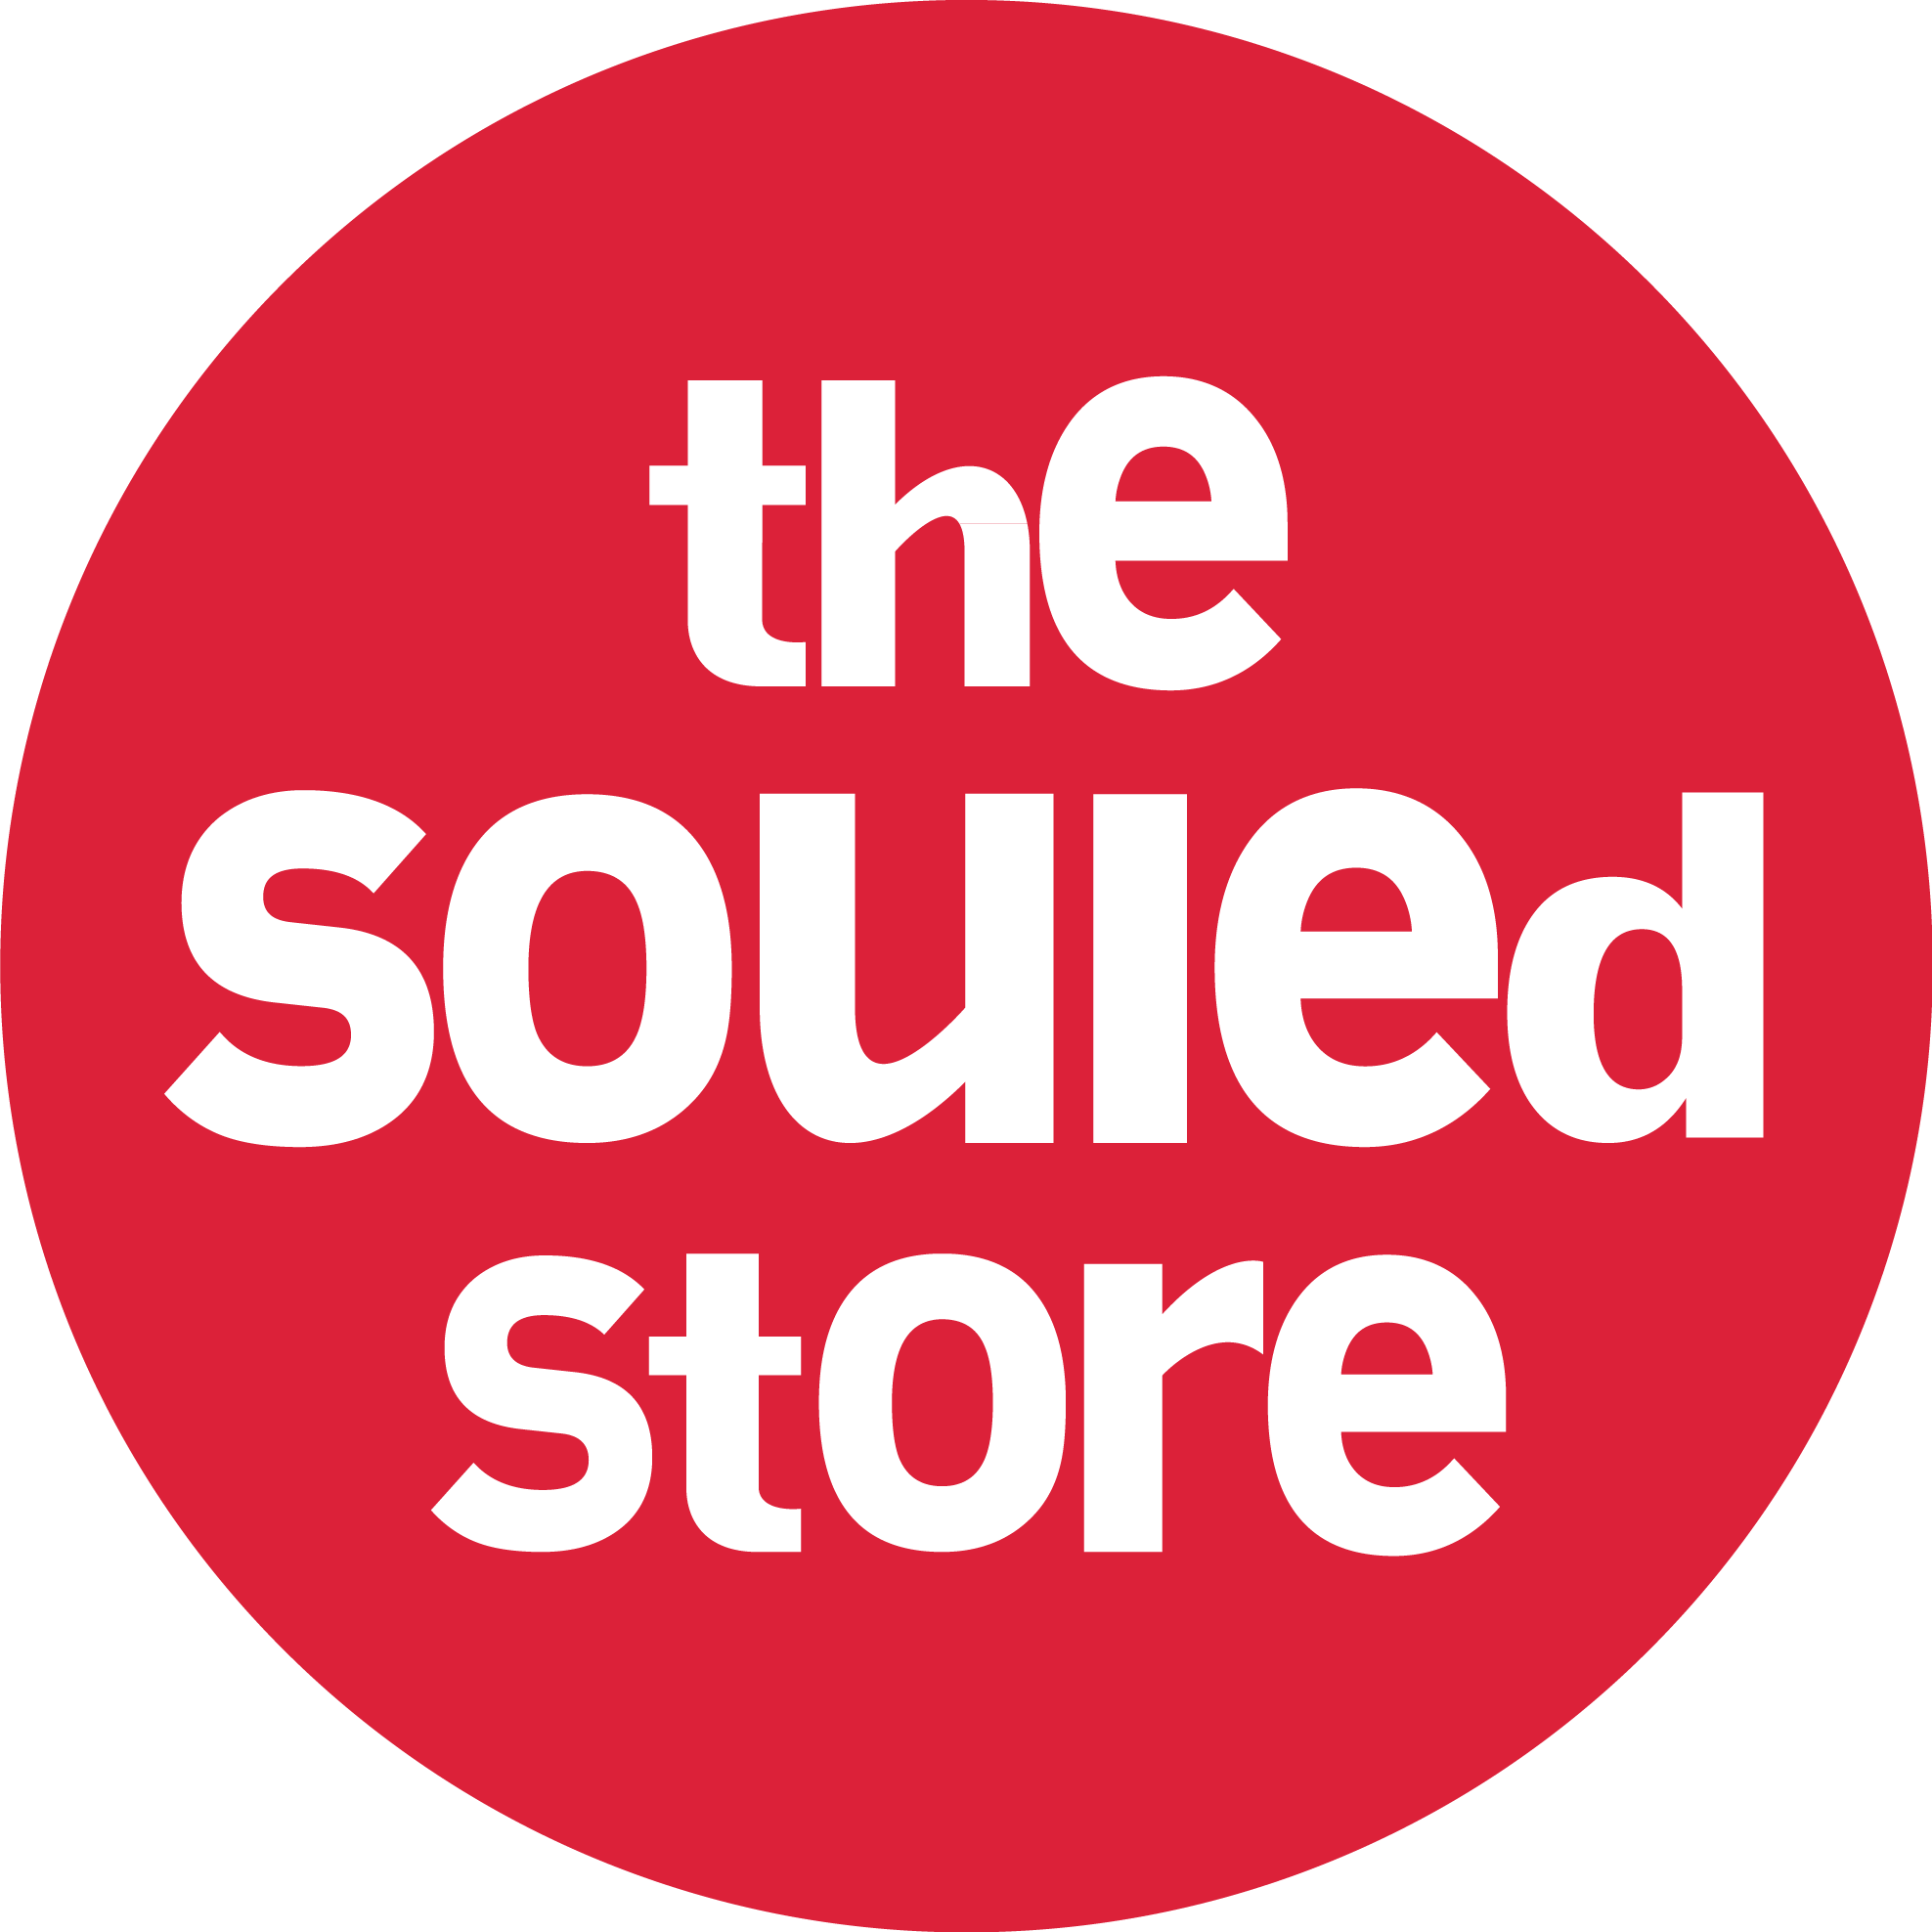 internship in The Souled Store